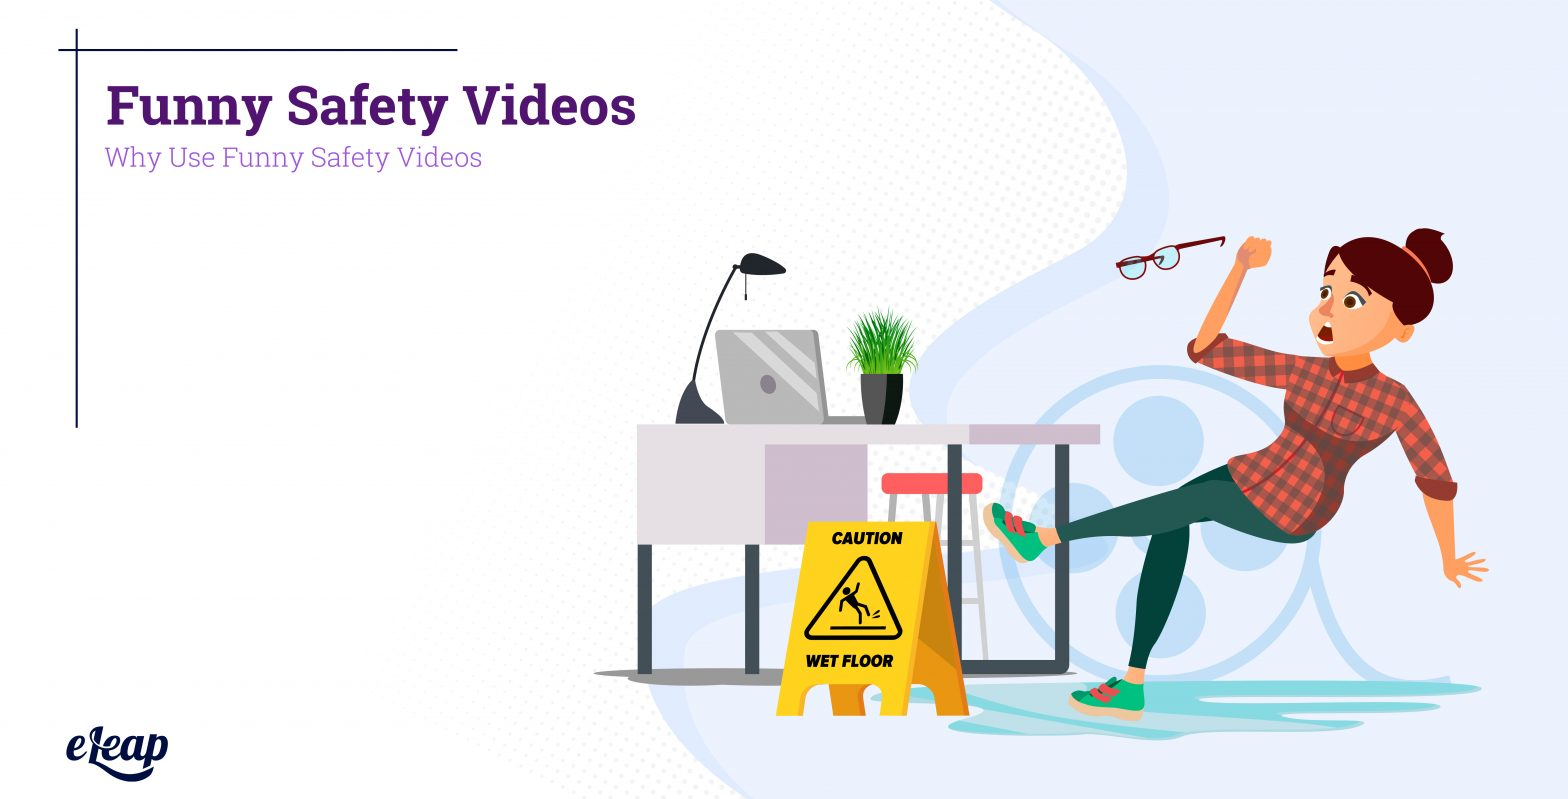 Funny Safety Videos